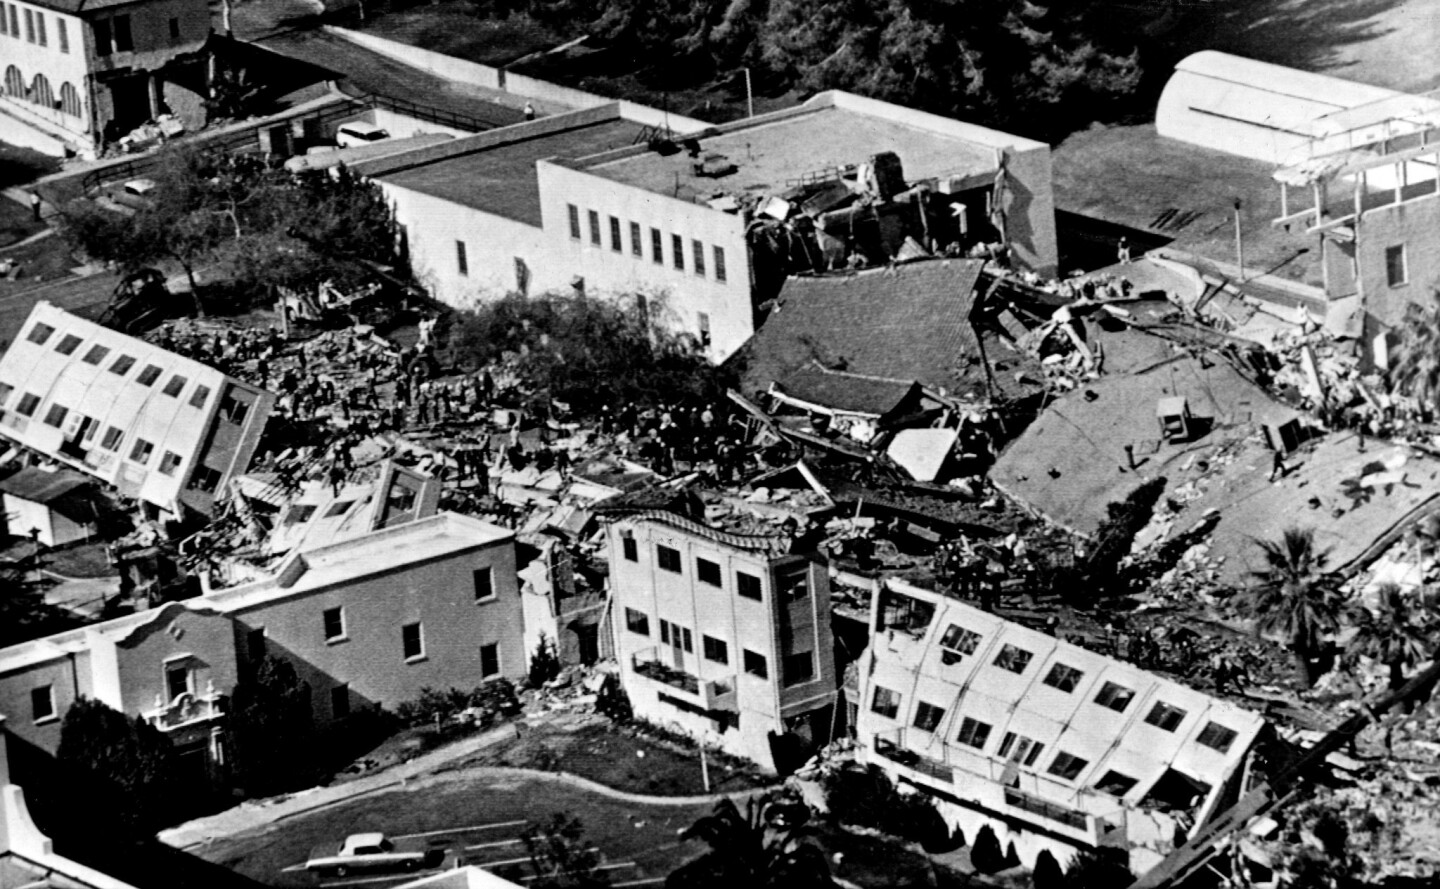 Two three-story buildings collapsed at the San Fernando Veterans Administration Hospital, crushing many patients inside, from the 1971 Sylmar earthquake. The last body was pulled out of the rubble four days after the Sylmar earthquake.